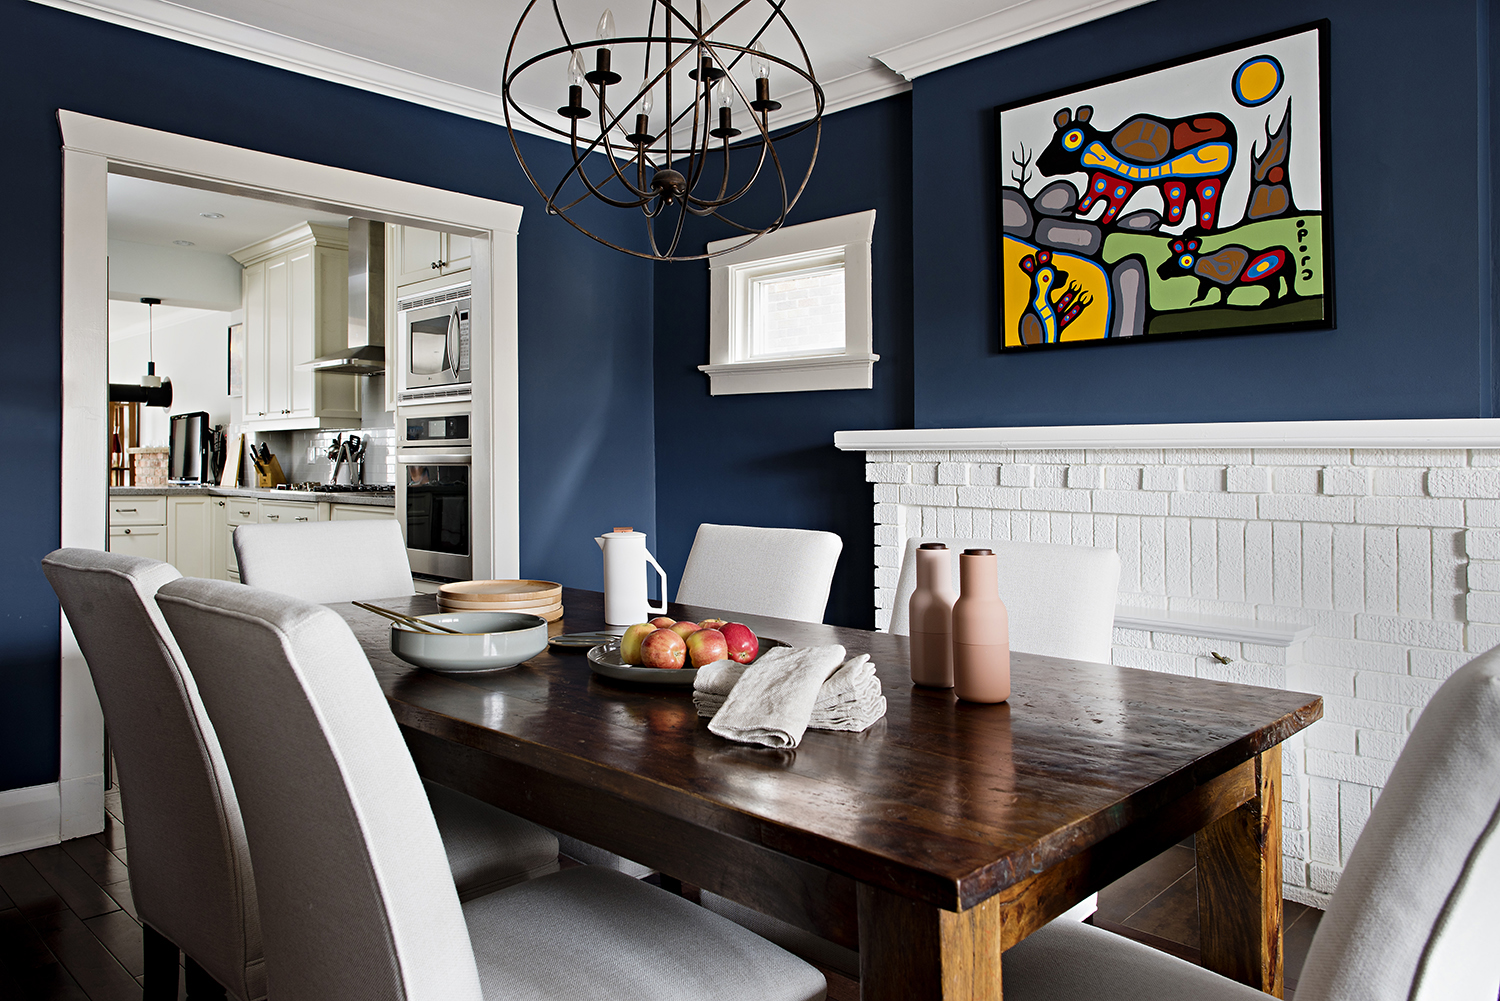 Inspired by this space? - See what Four Blocks South can do for your home by contacting our team today. We will be in touch soon after to schedule a call and discuss your residential interior design project.